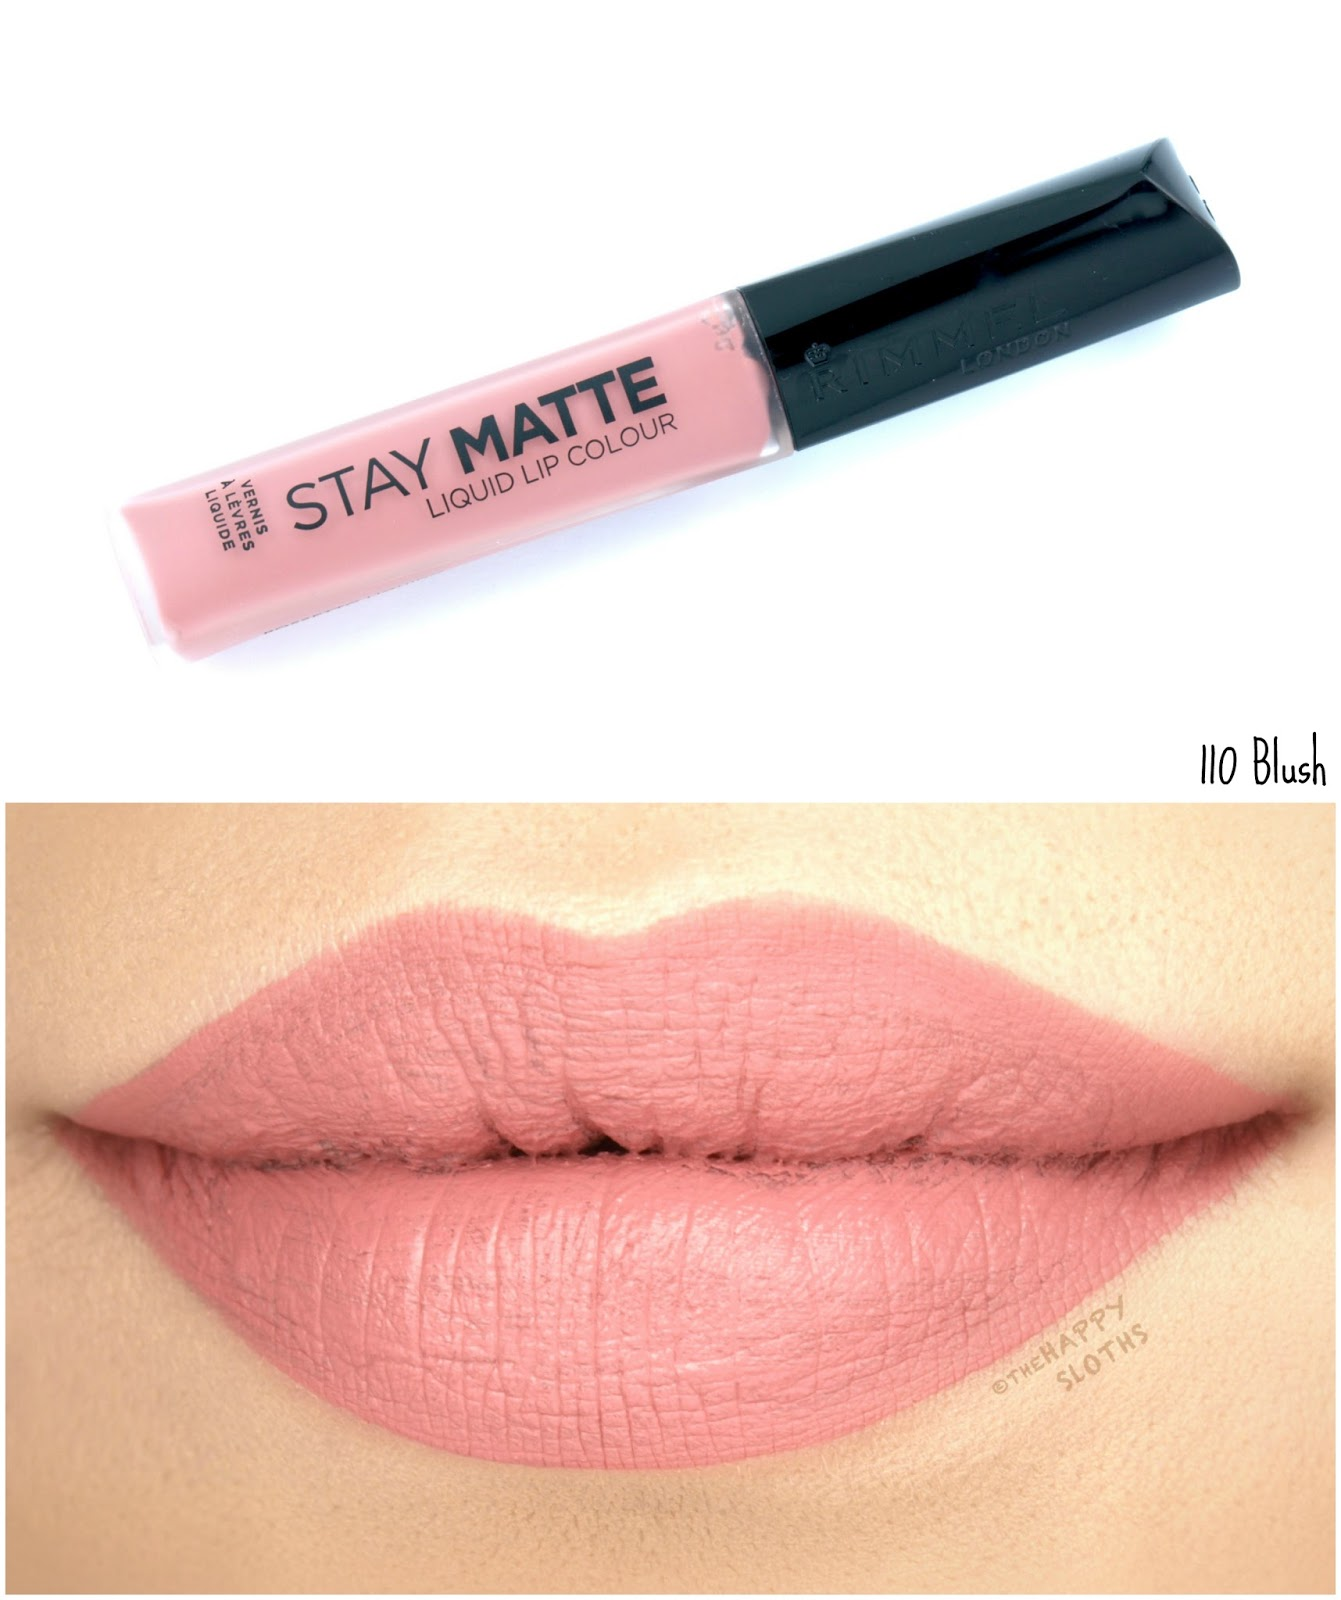 Rimmel London Stay Matte Liquid Lip Colour | 110 Blush: Review and Swatches